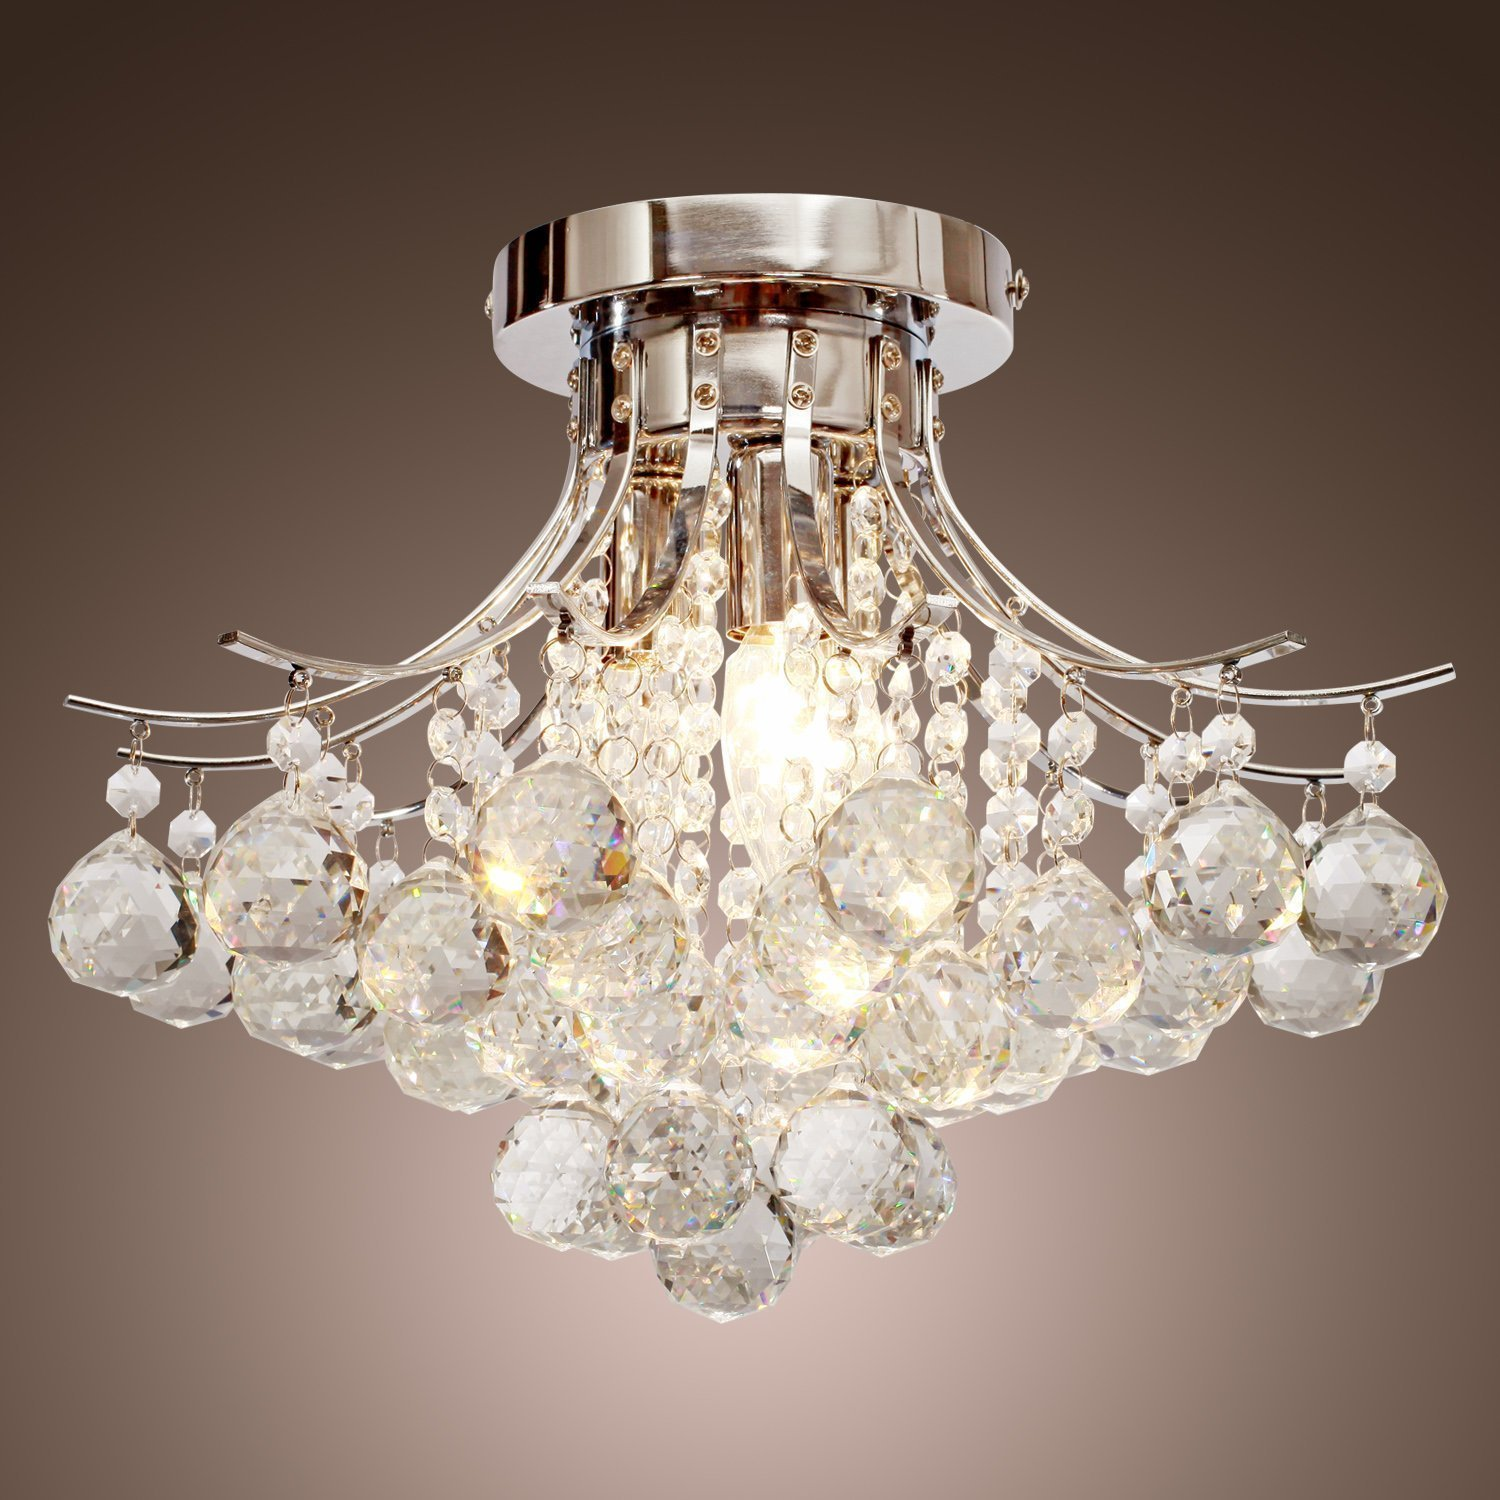 Loco chrome finish crystal chandelier with 3 lights mini style loco chrome finish crystal chandelier with 3 lights mini style flush mount ceiling light fixture for study roomoffice dining room bedroom aloadofball Images